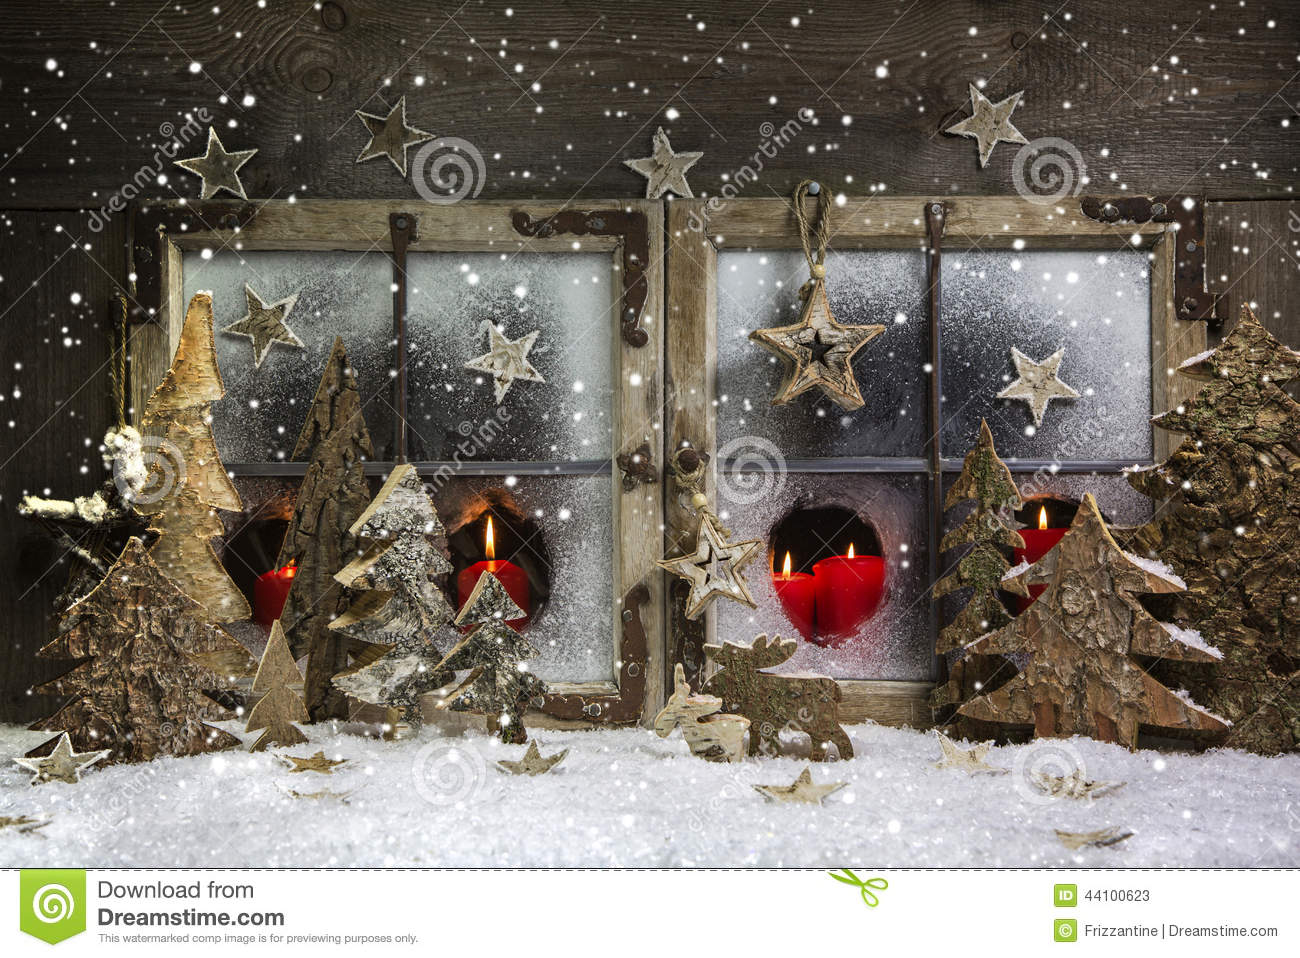 Mood and atmosphere christmas window decoration in red - Decoration de fenetre pour noel ...